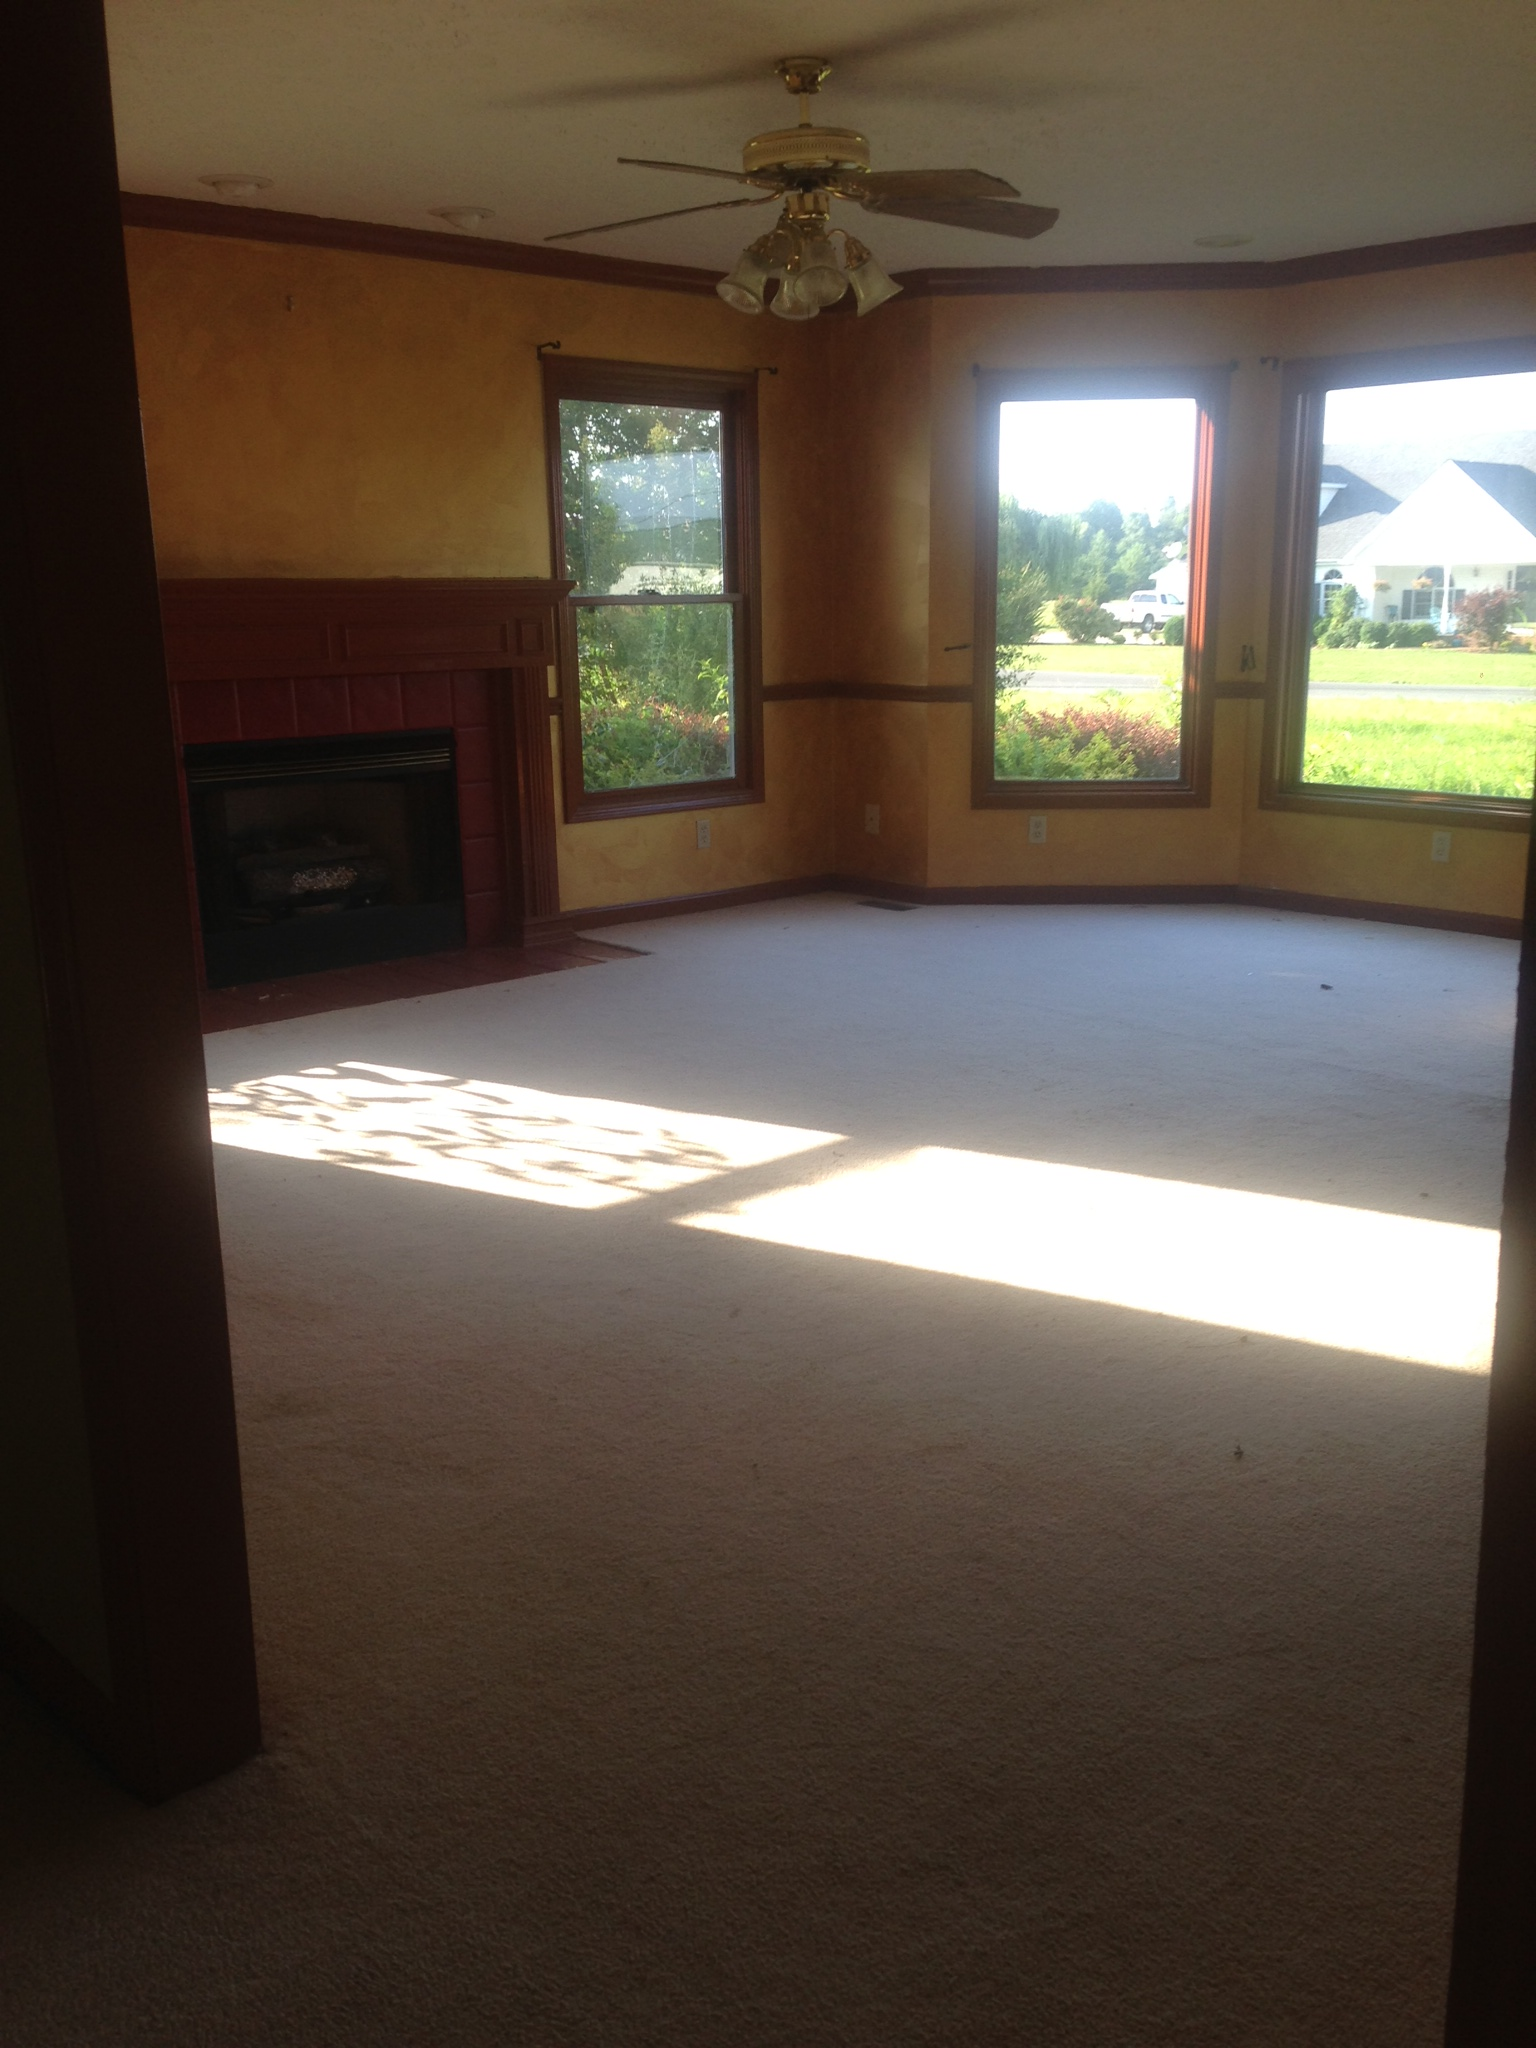 Our Foreclosure~A Home Tour of the Before and Afters